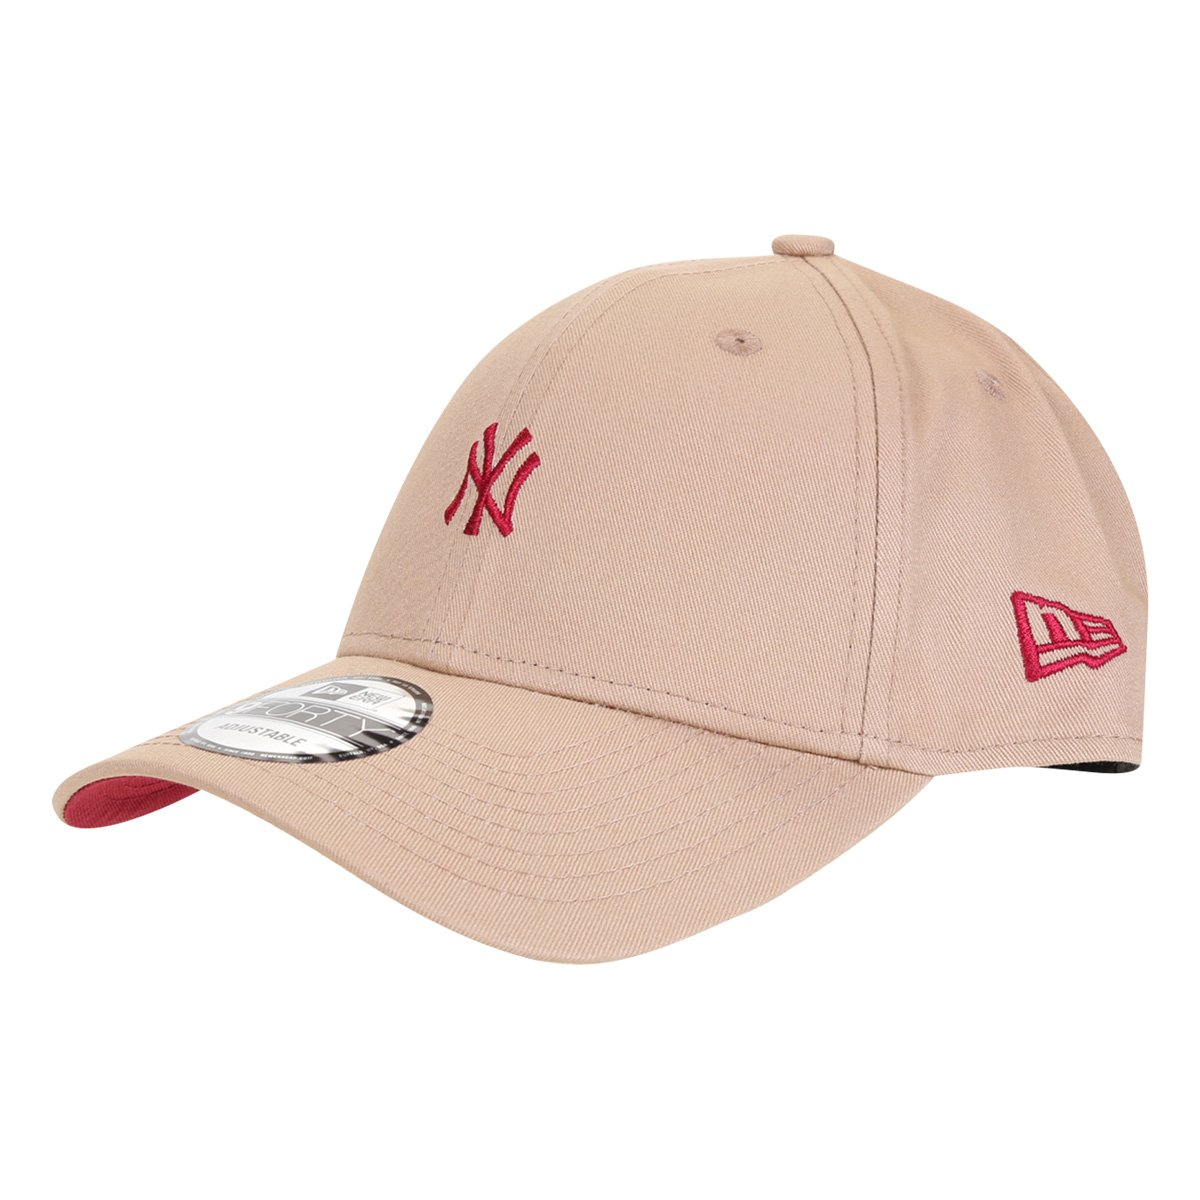 BonéNew Era MLB New York Yankees Aba Curva Snapback 940